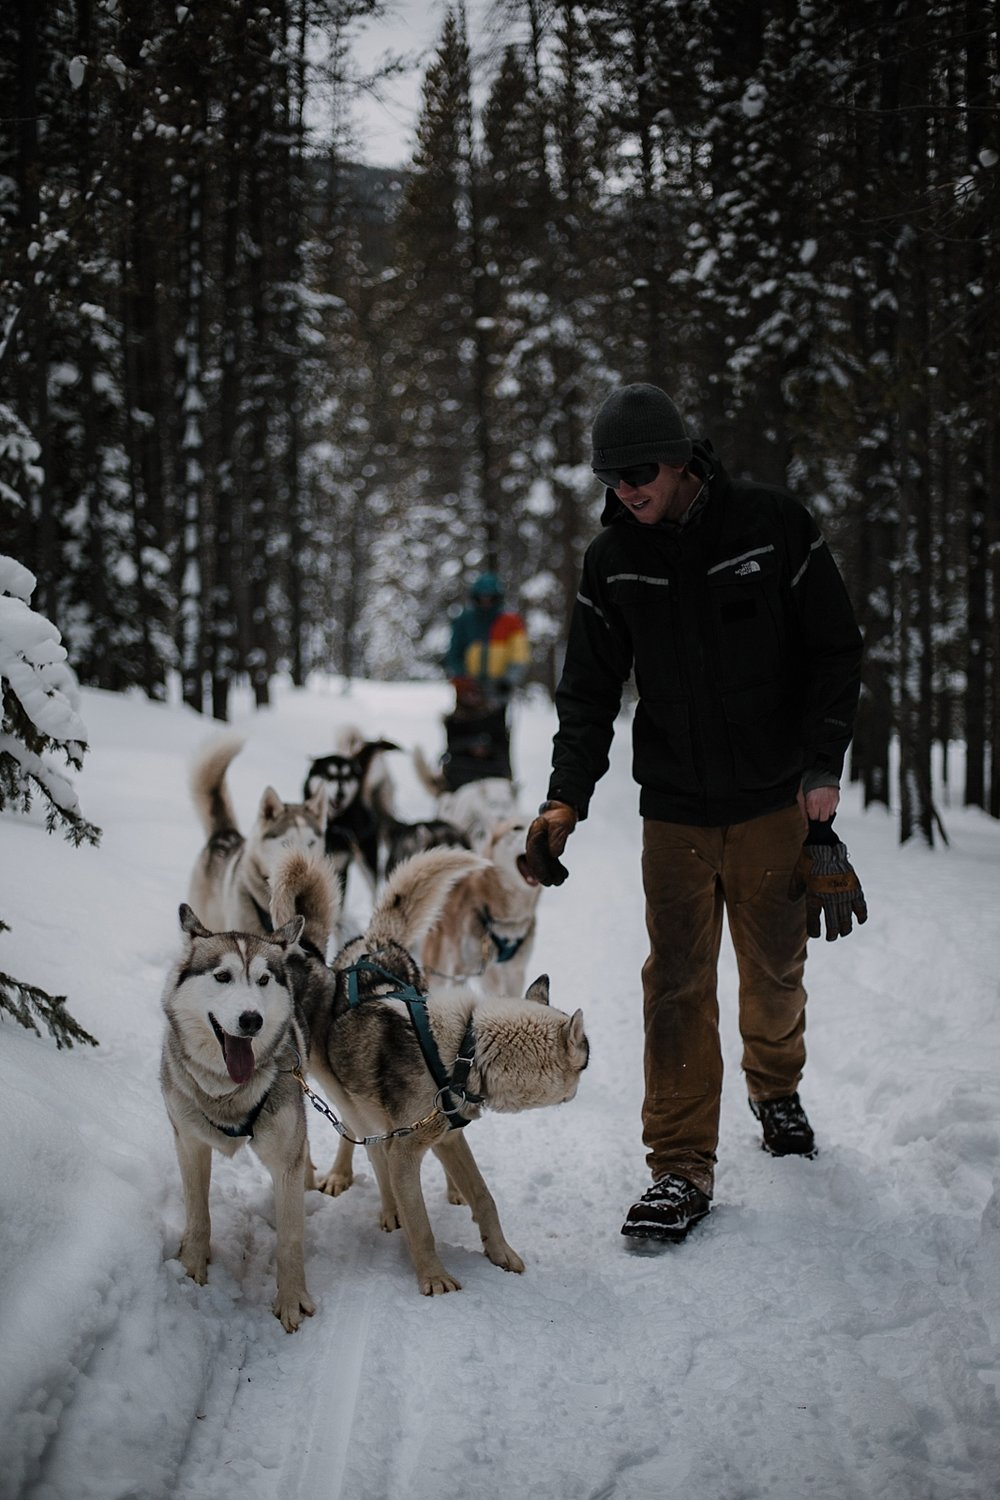 sleddogs, breckenridge elopement photographer, breckenridge wedding photographer, frisco elopement photographer, leadville elopement photographer